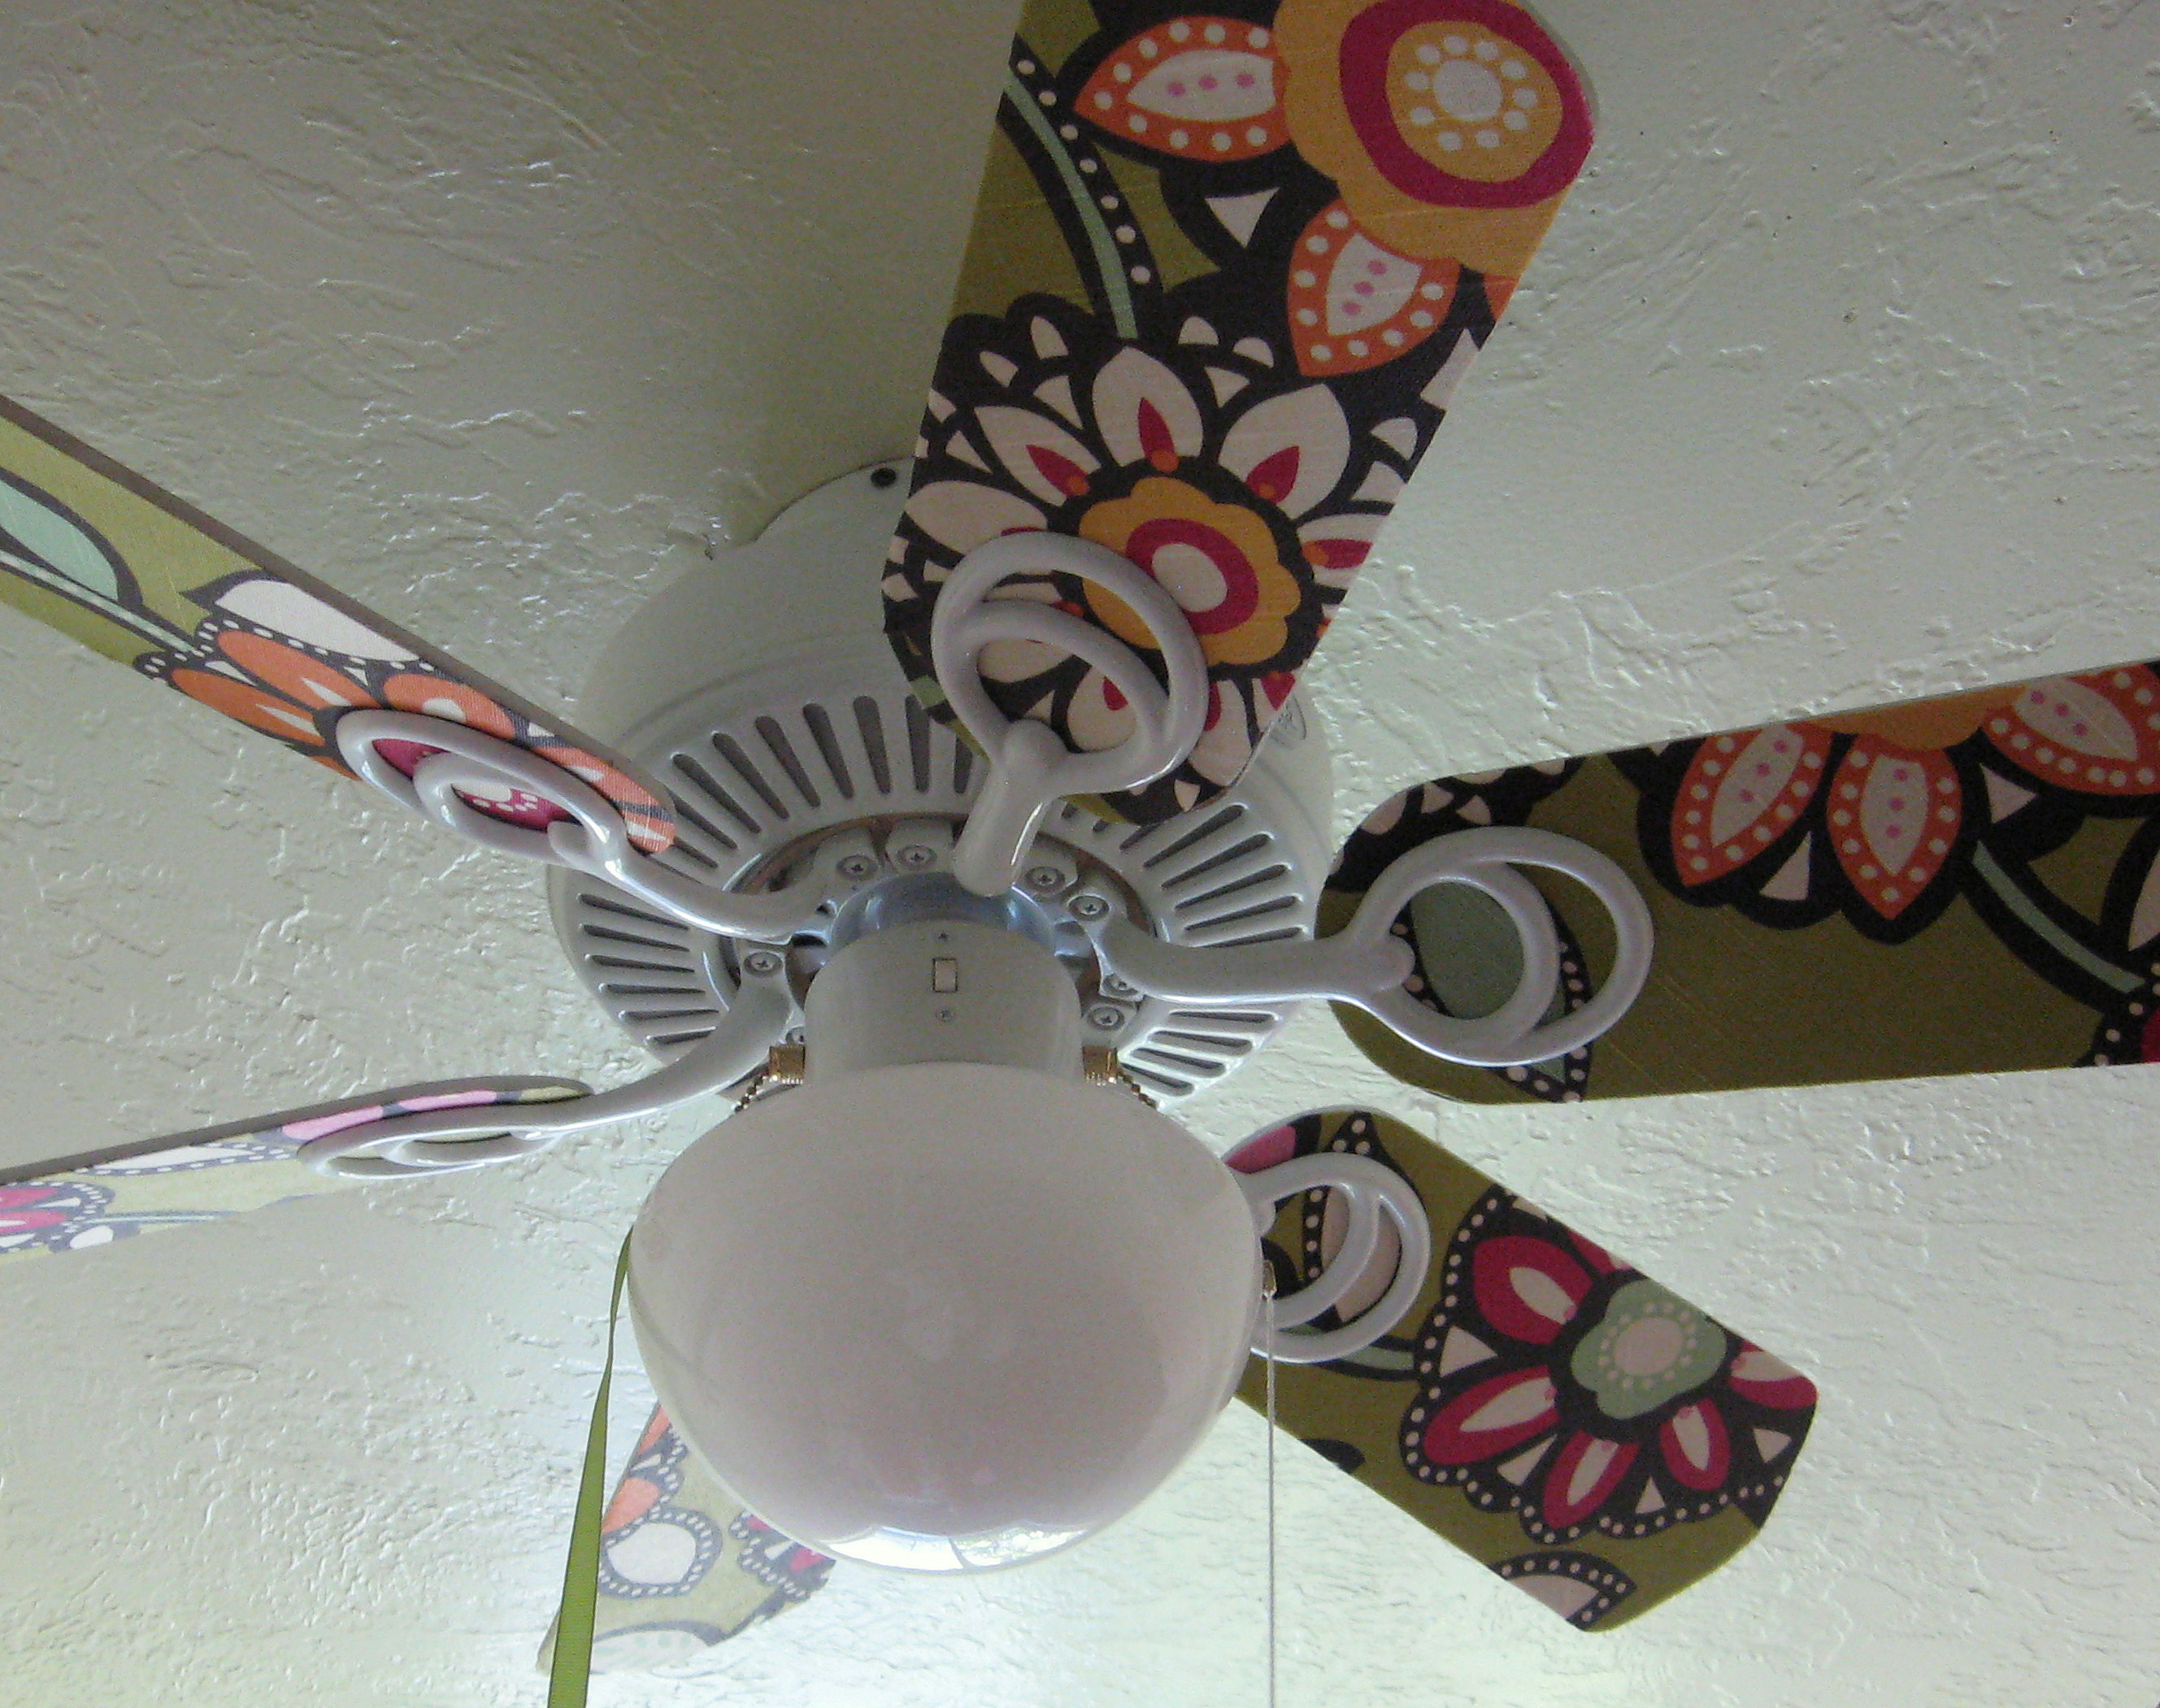 A pyp best blog update a boring ceiling fan pinching your pennies screw the finished fan blades back into place and enjoy mozeypictures Gallery